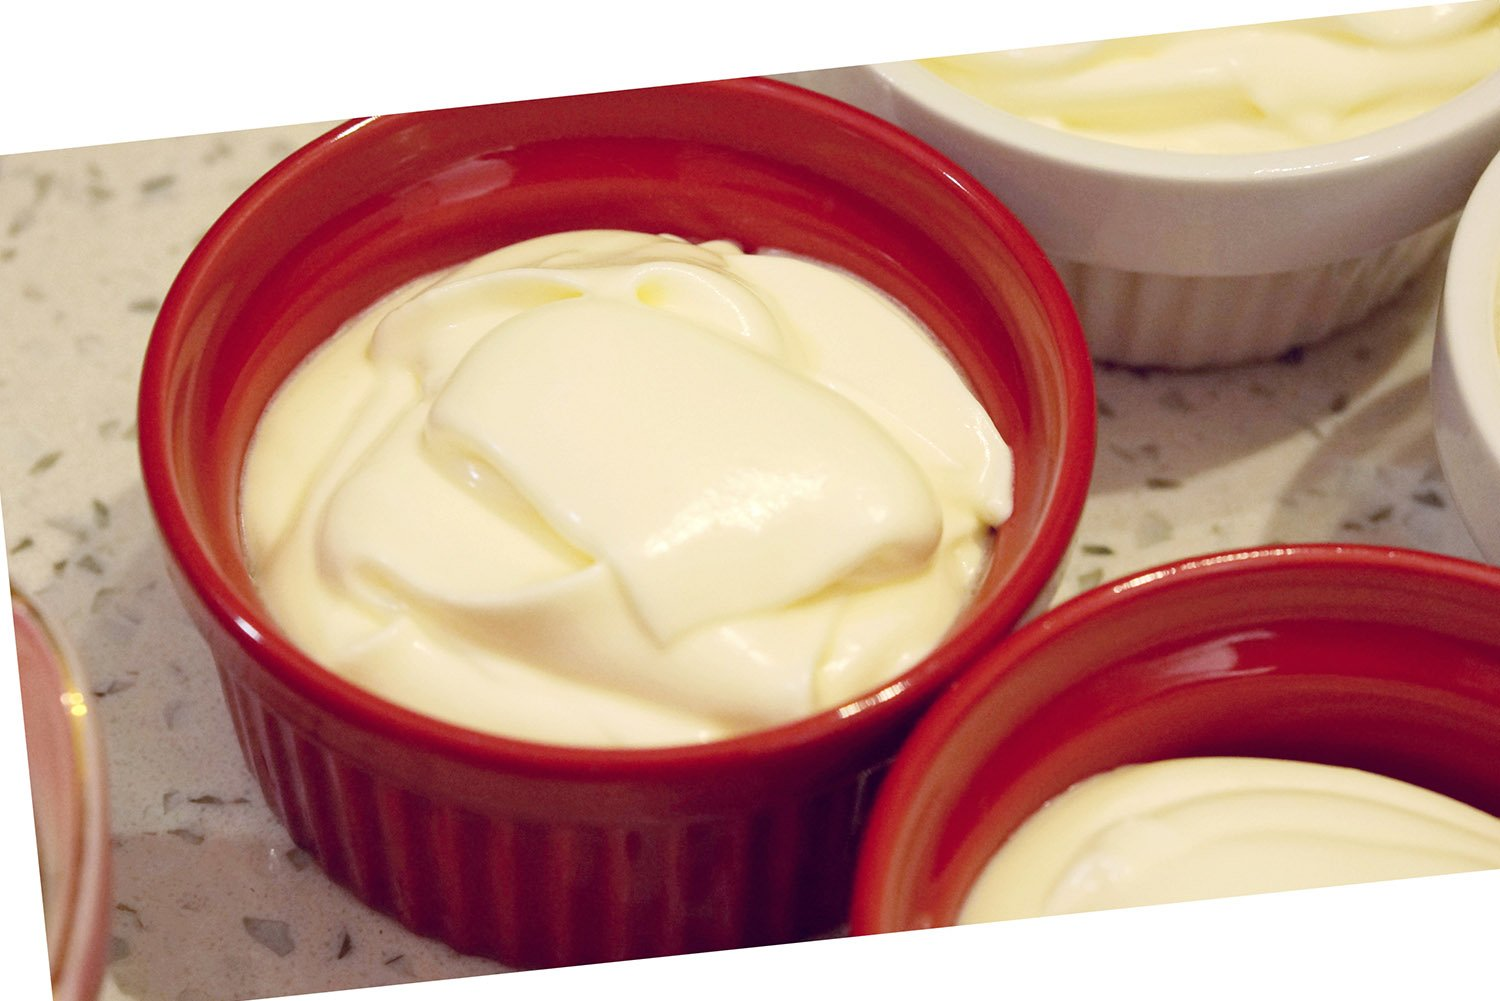 Cinf  Porcelain Ramekin Red 4 oz. Pudding Bowls Dishes Cup For Baking, Set Of 6 by Cinf (Image #3)